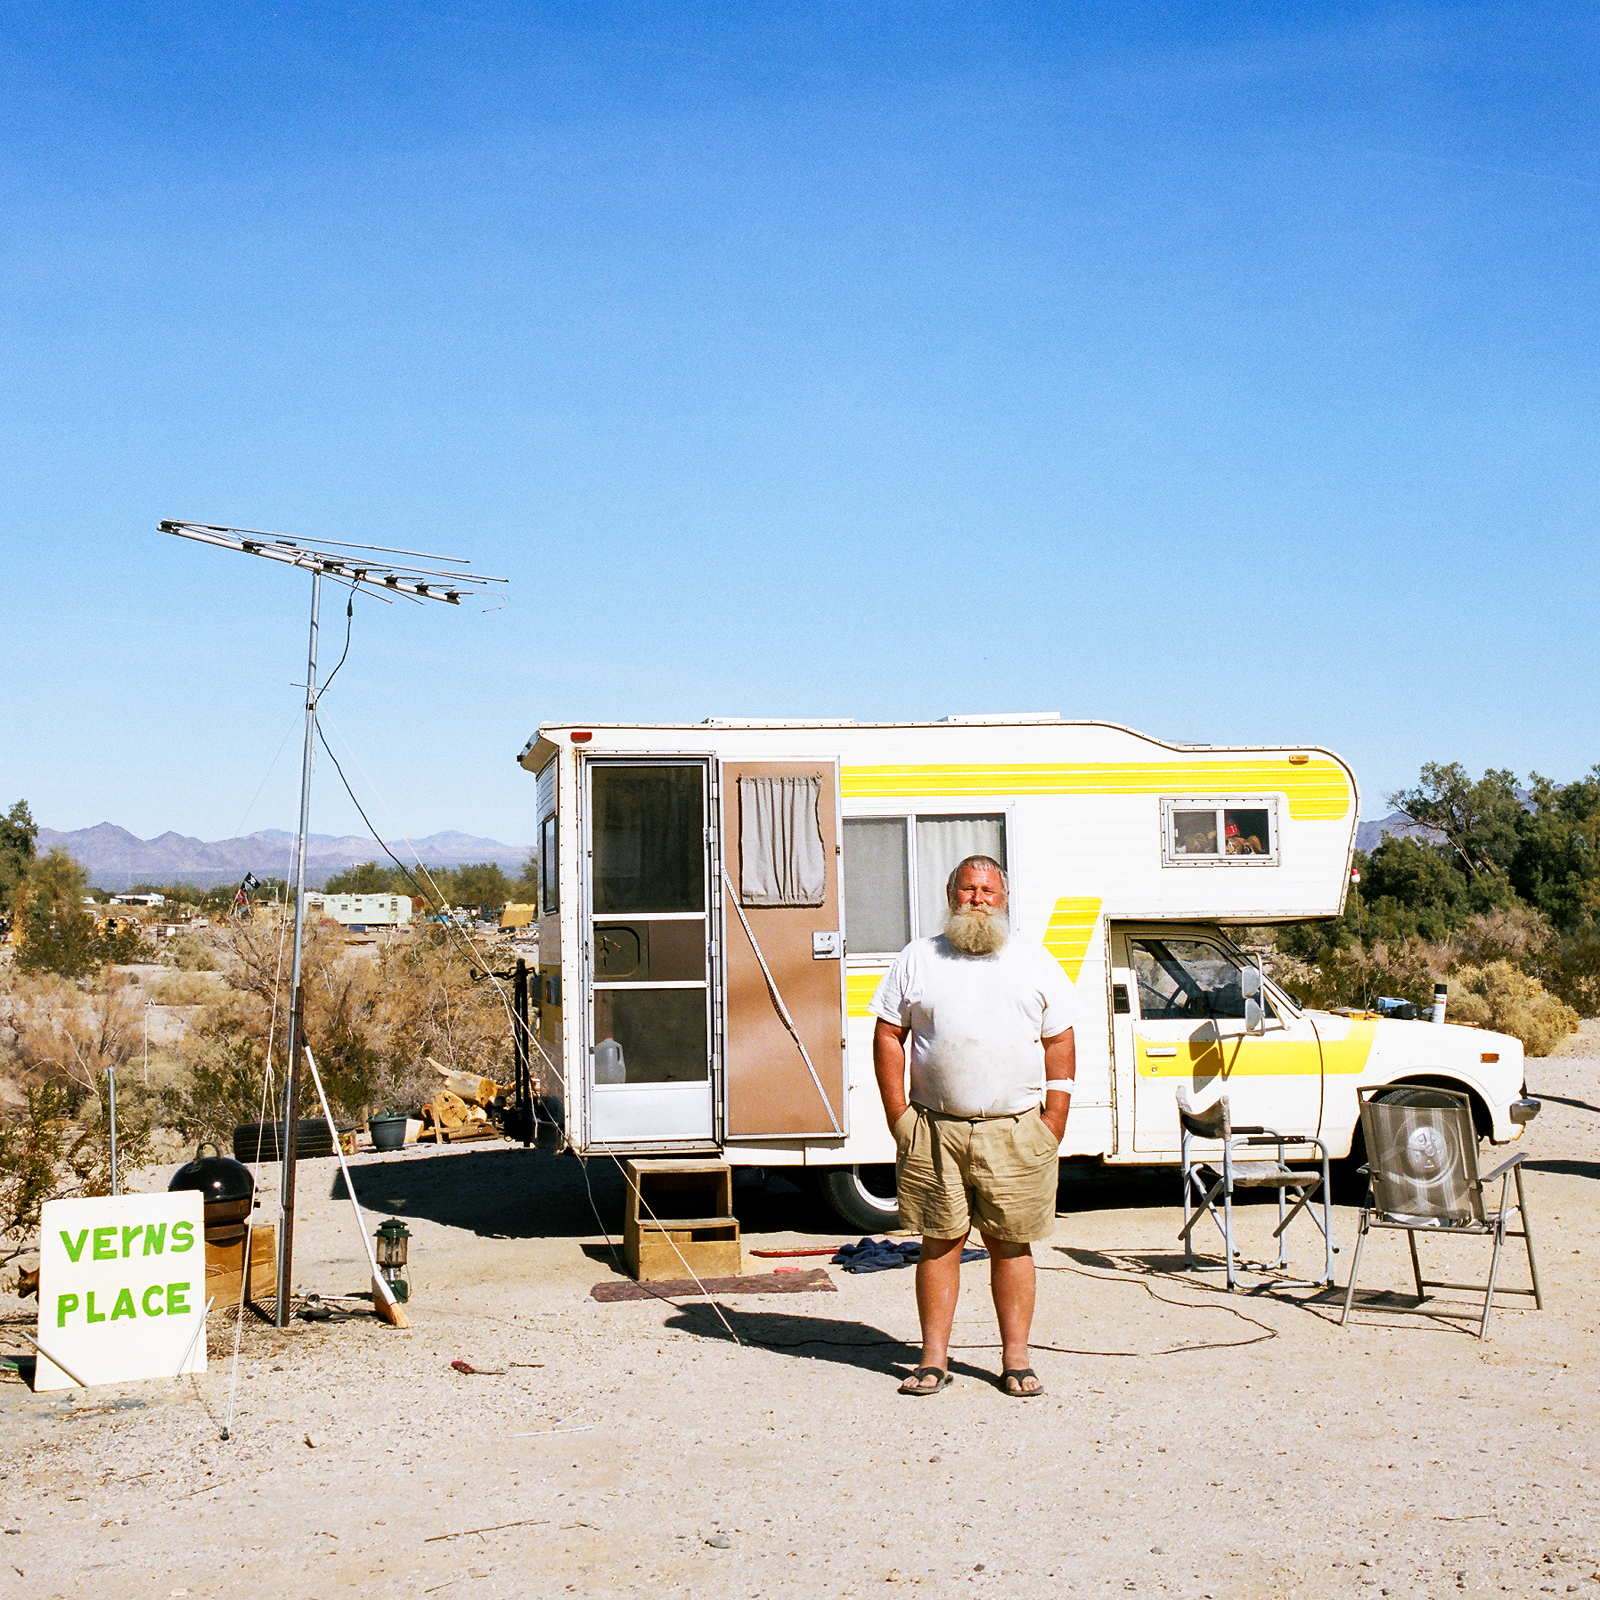 Vern, Slab City, Kalifornie, 2013